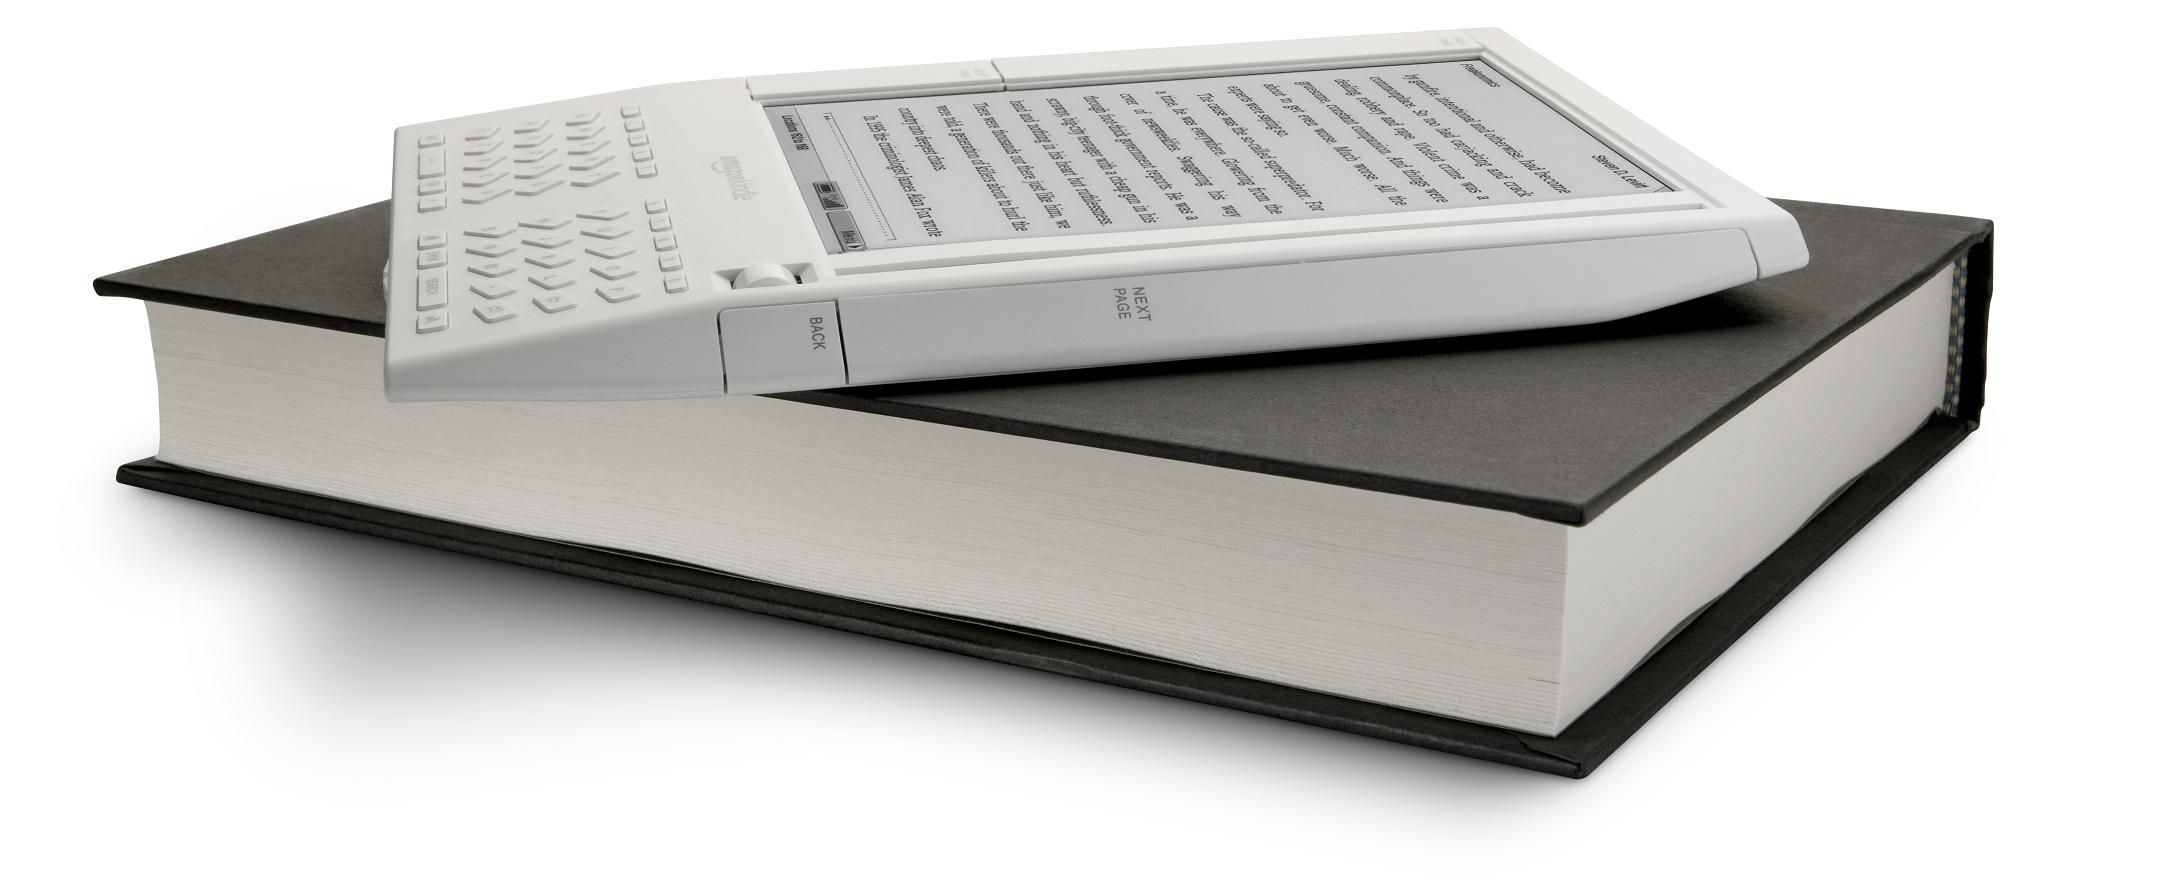 Amazon Kindle 1